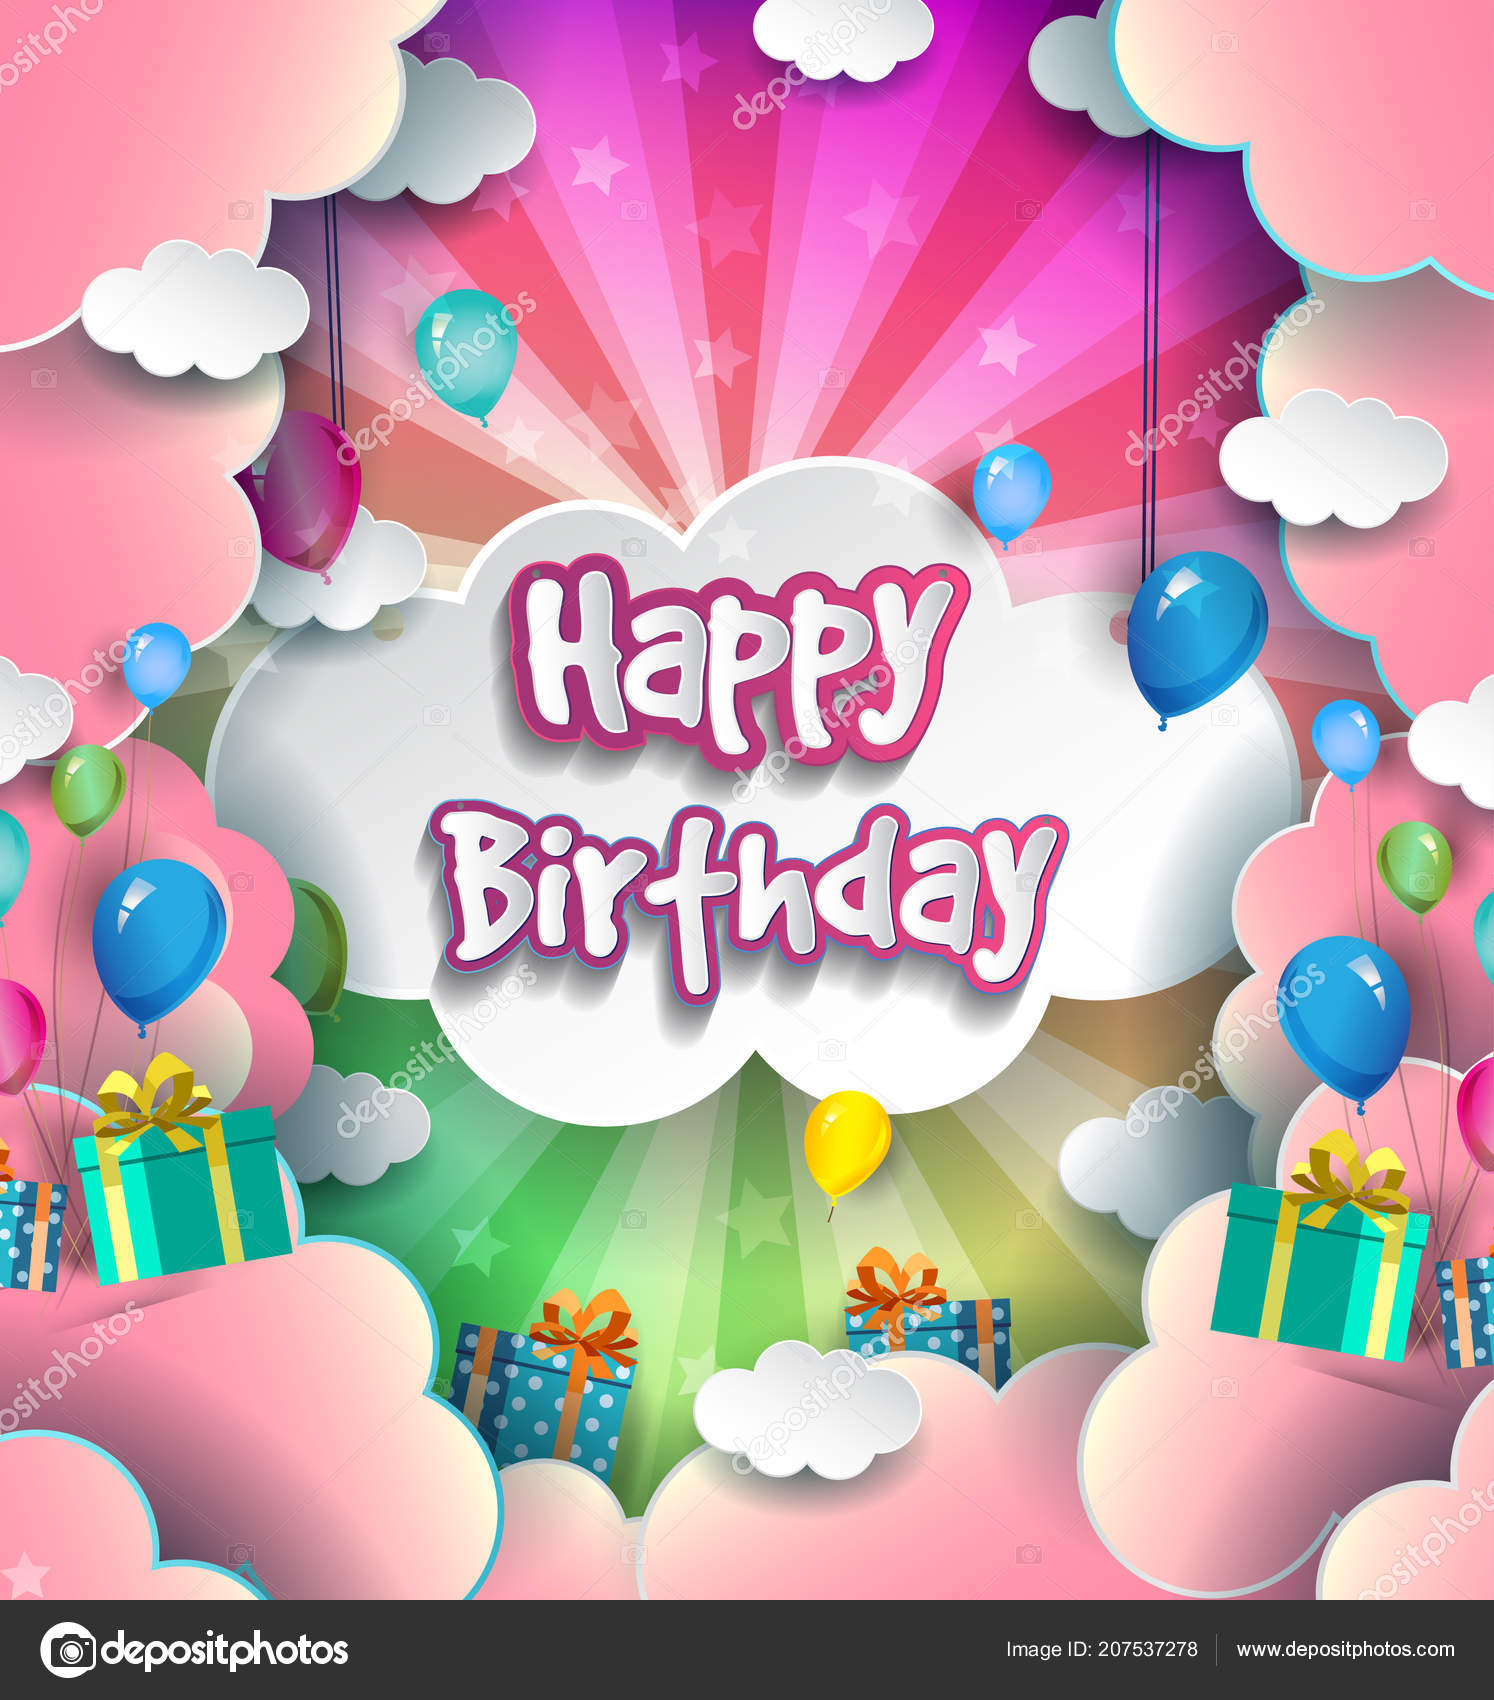 Happy Birthday Typography Vector Design Greeting Cards Poster Balloons Gift Stock